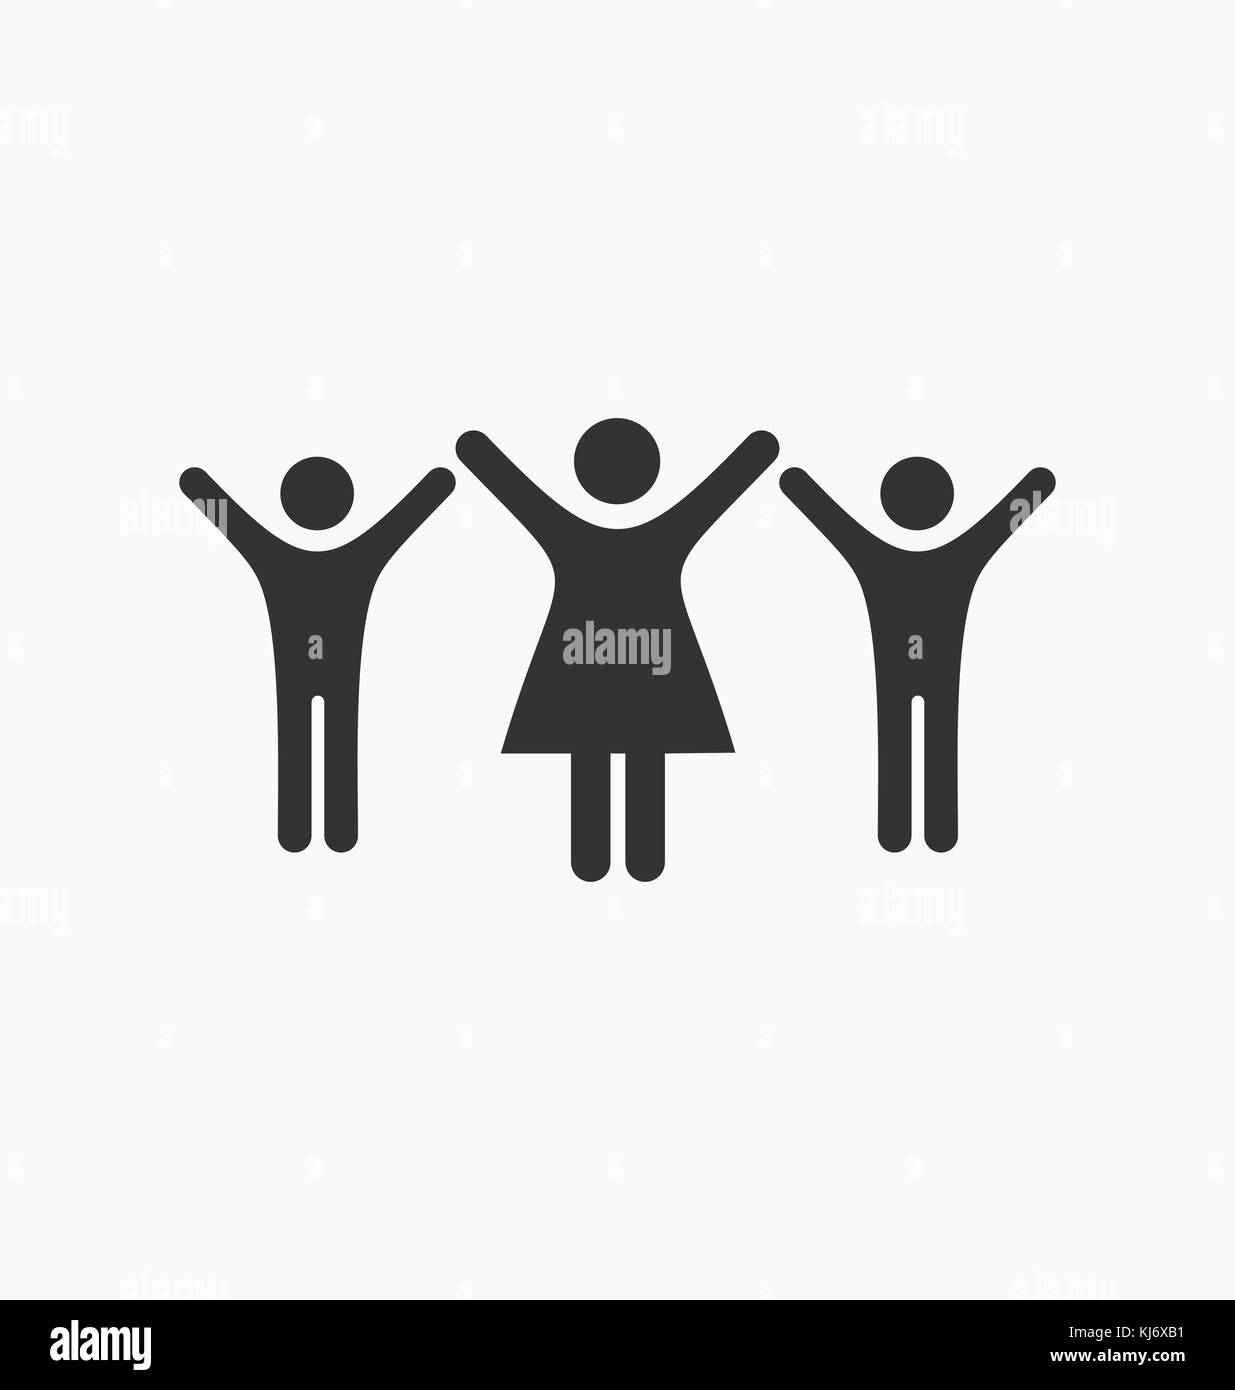 Silhouette people icons. Kids hands up. Peace. - Stock Vector